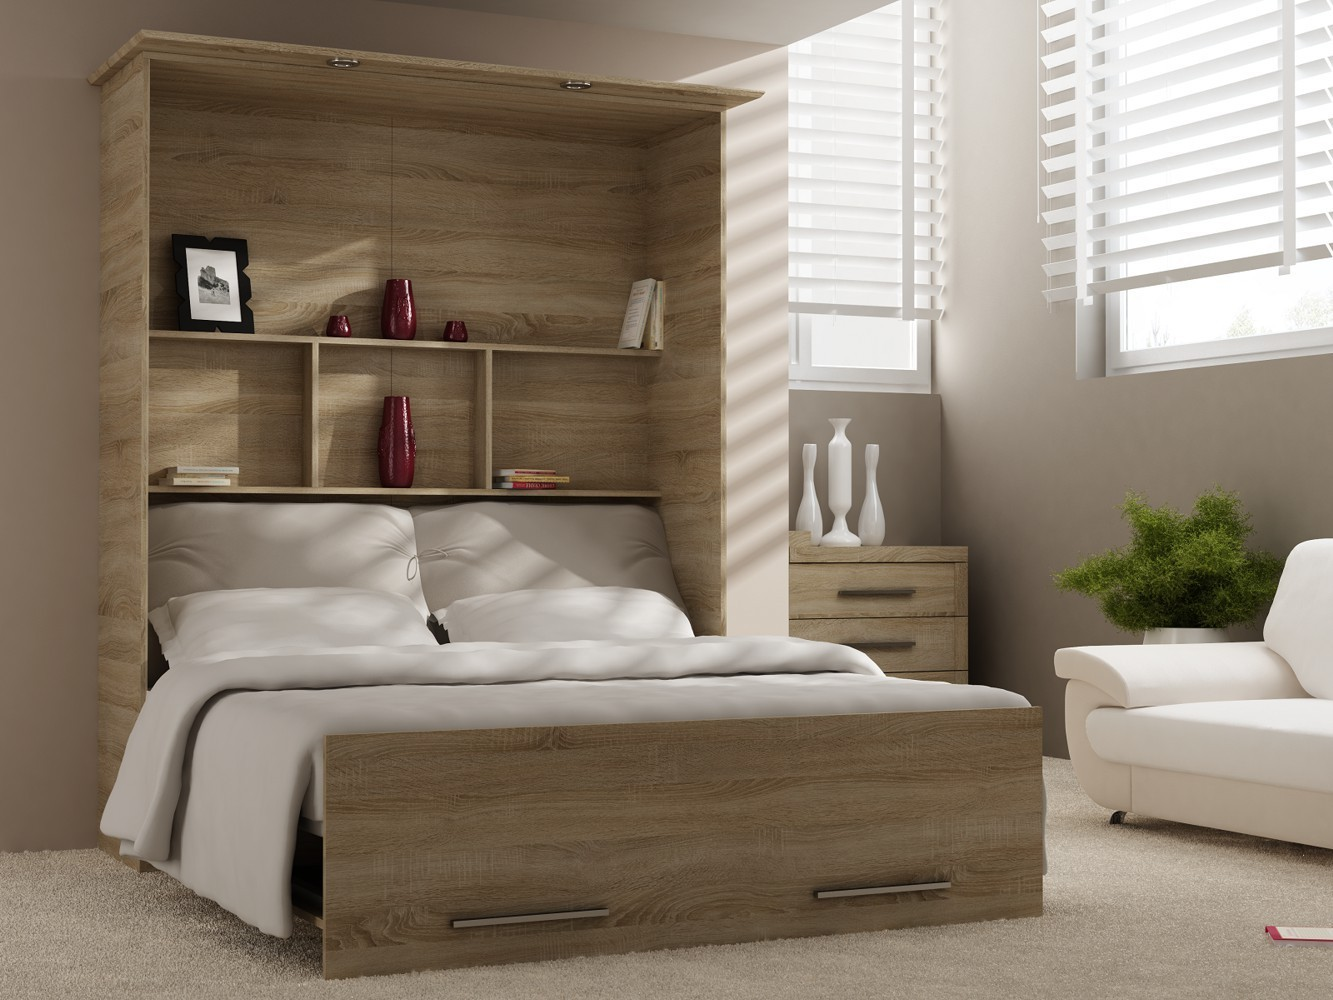 wandbett 50 w 1 160x200 cm in bardolino eiche grau hochkant. Black Bedroom Furniture Sets. Home Design Ideas